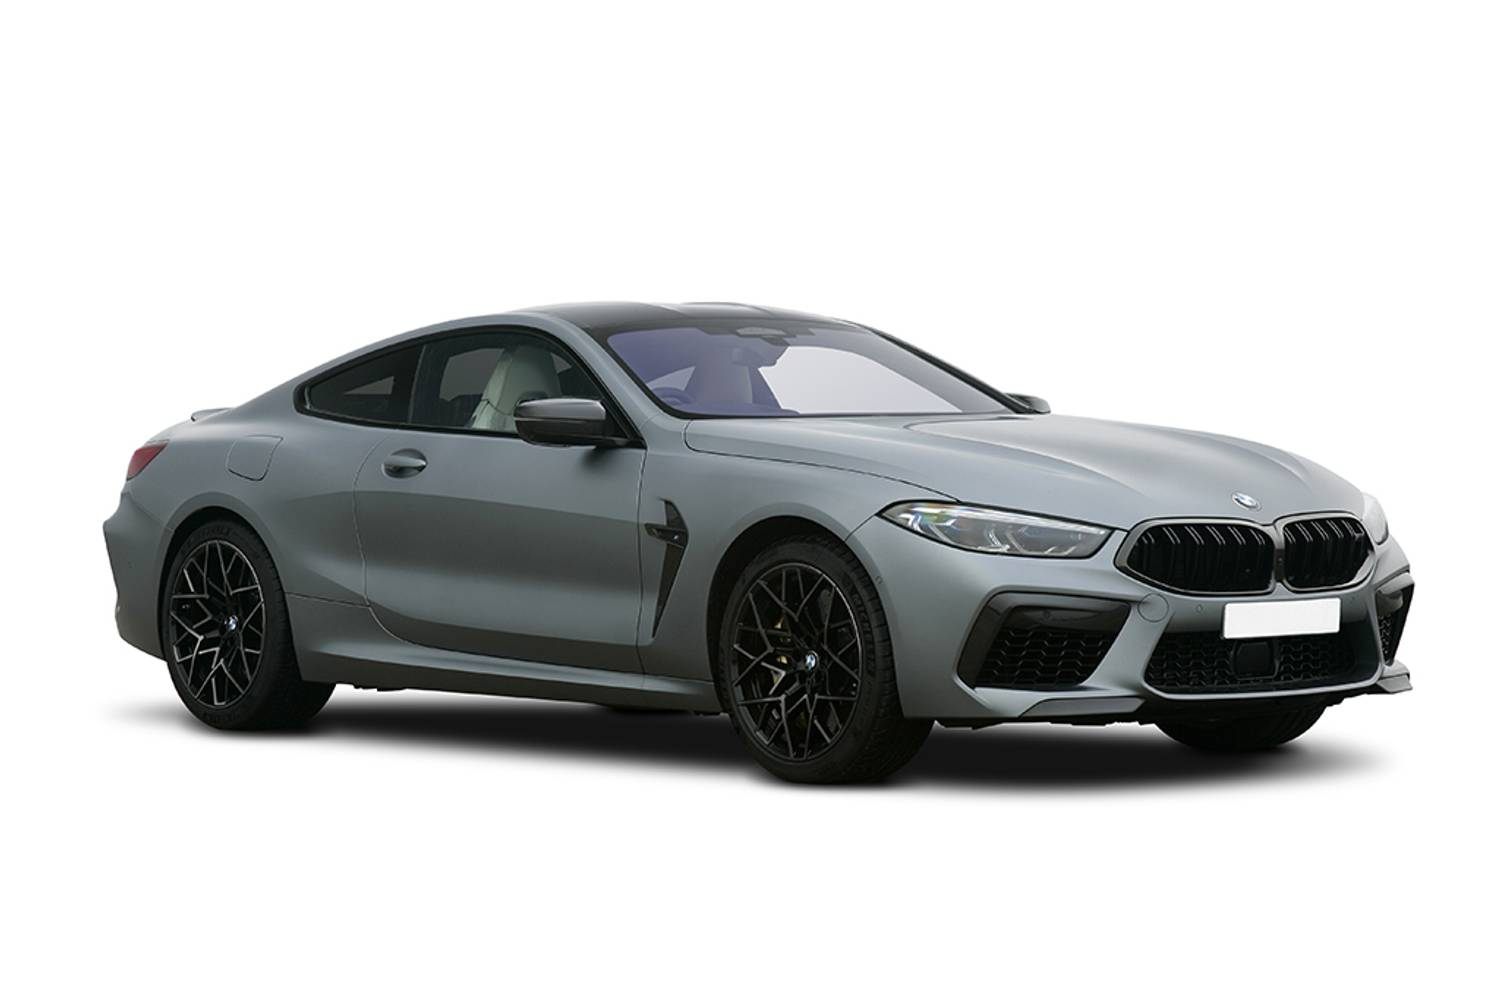 New Bmw M8 Coupe M8 Competition 2 Door Step Auto Ultimate Pack 2019 For Sale